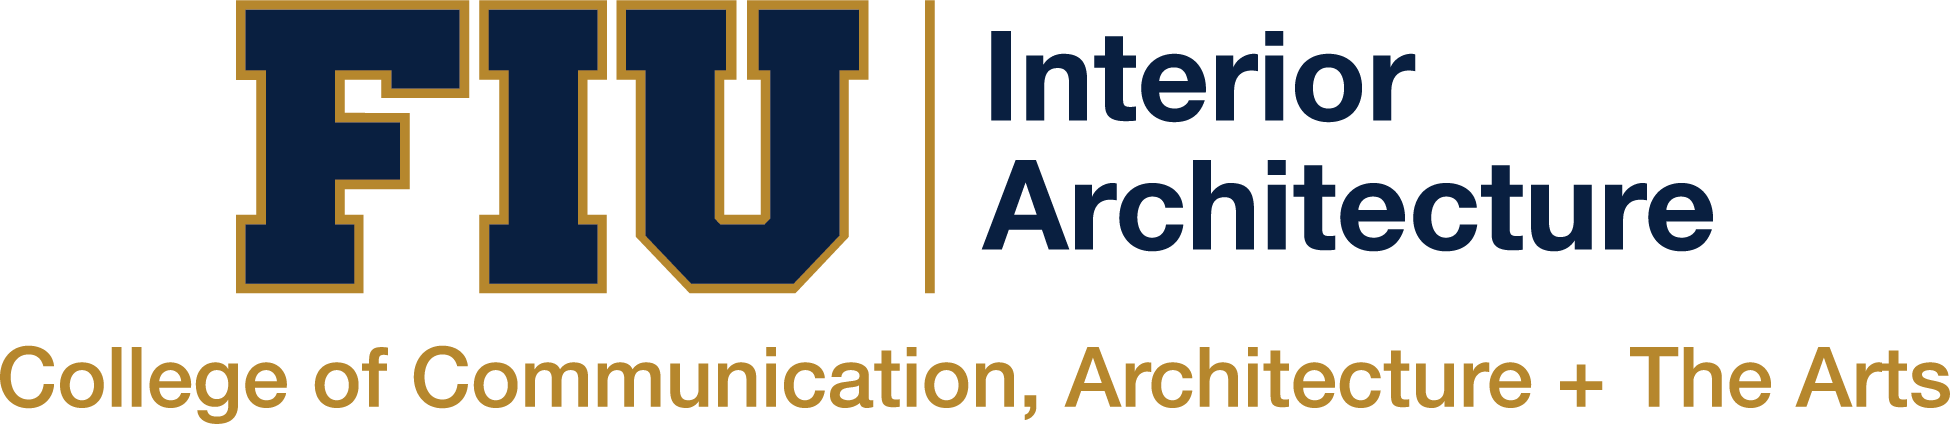 Department of Interior Architecture Logo